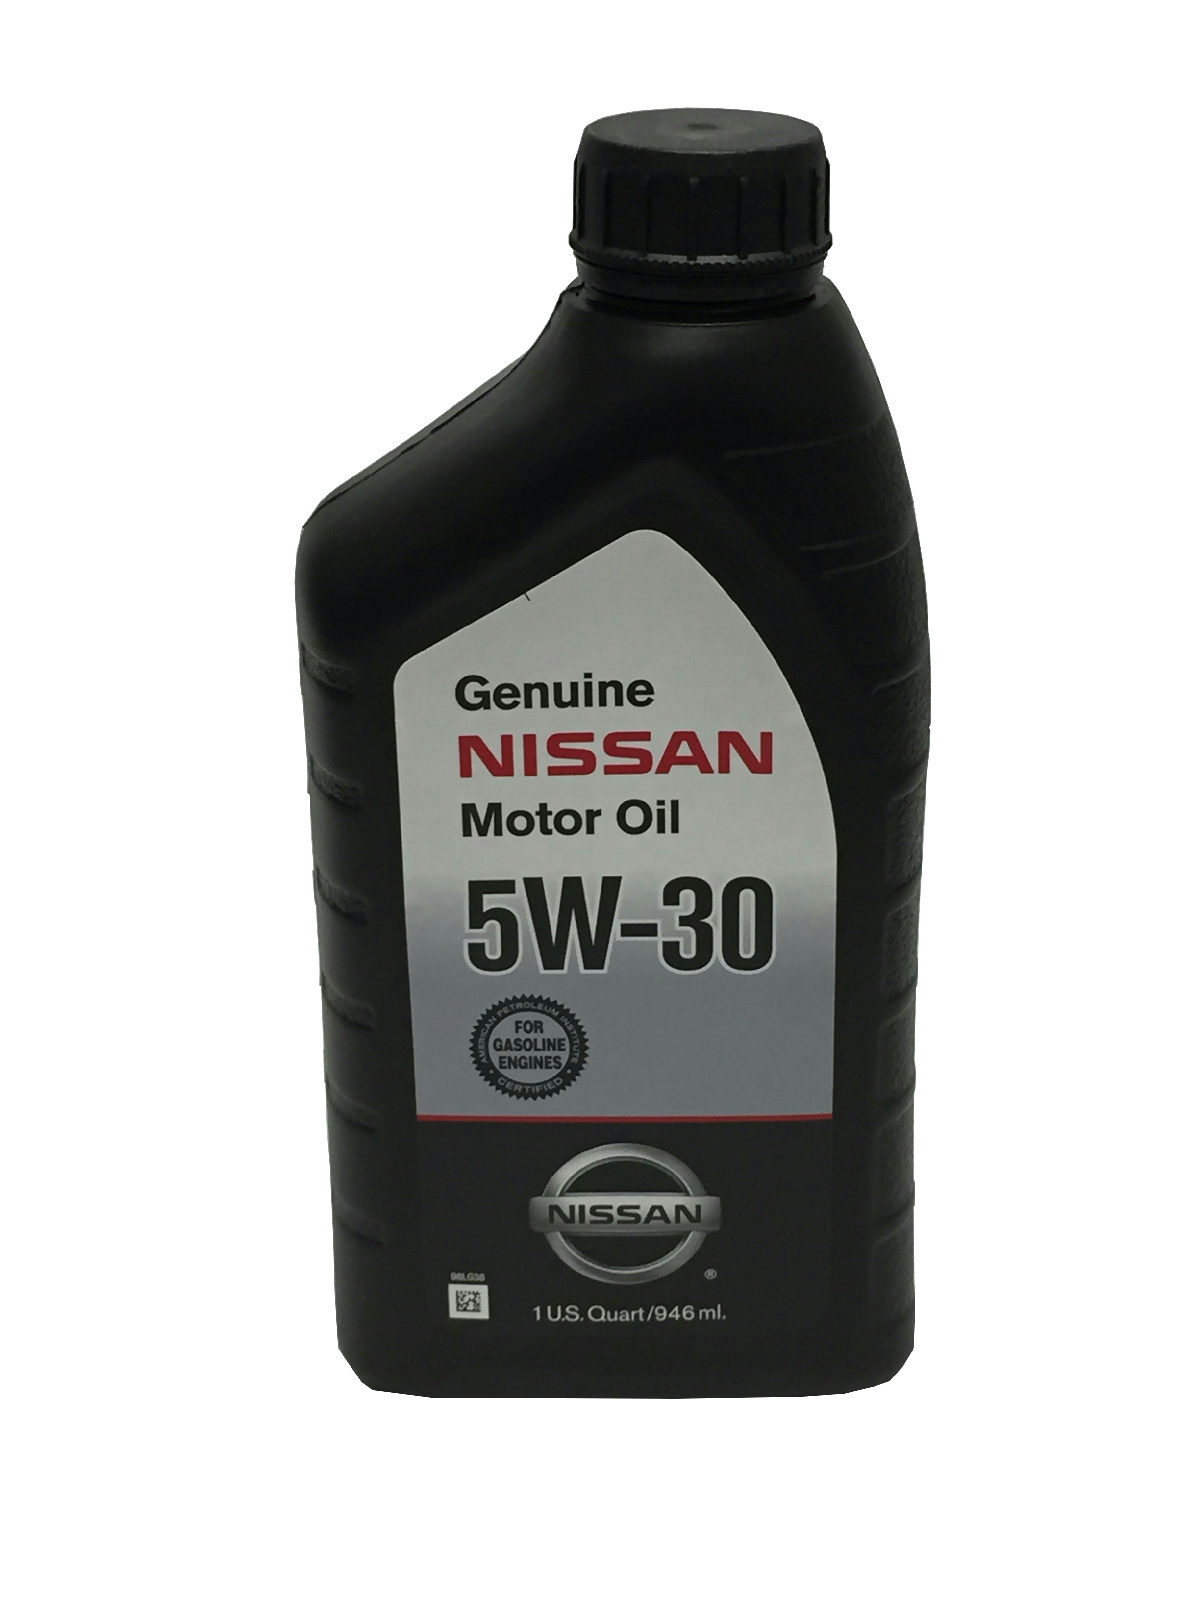 Genuine nissan 5w 30 motor oil ebay for Nissan motor credit payoff phone number